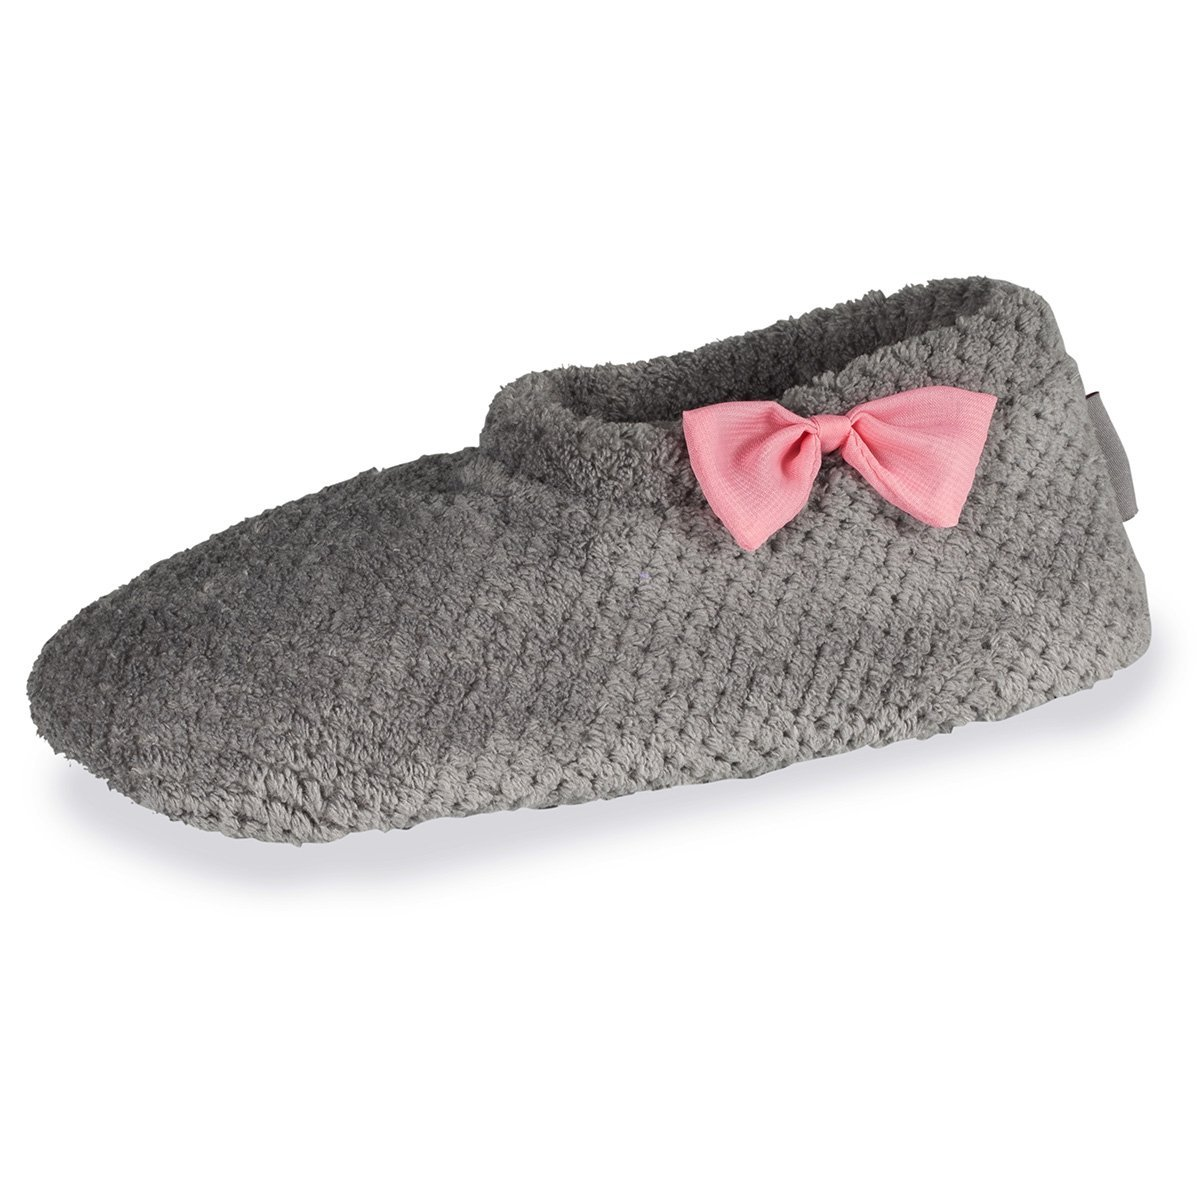 Isotoner Gris Chaussons Bottillons Femme nud nud Organza Organza Gris b063815 - deadsea.space